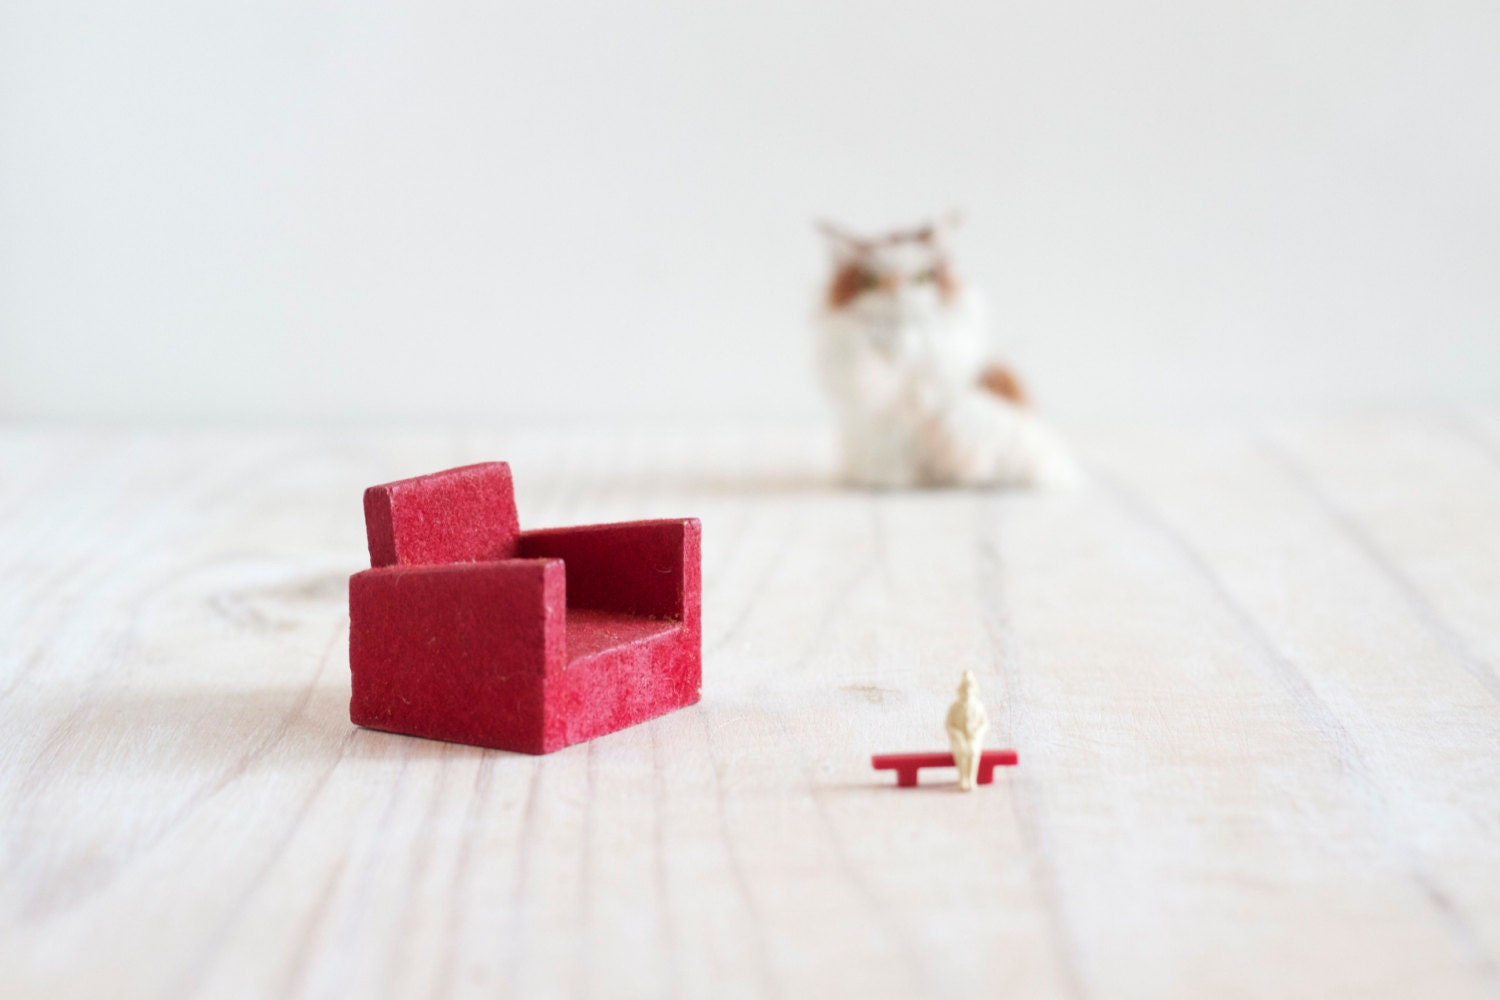 Teeny Weeny Vintage Red Arm Chair - Doll's House Miniature Living Room - MeangleanAlchemist